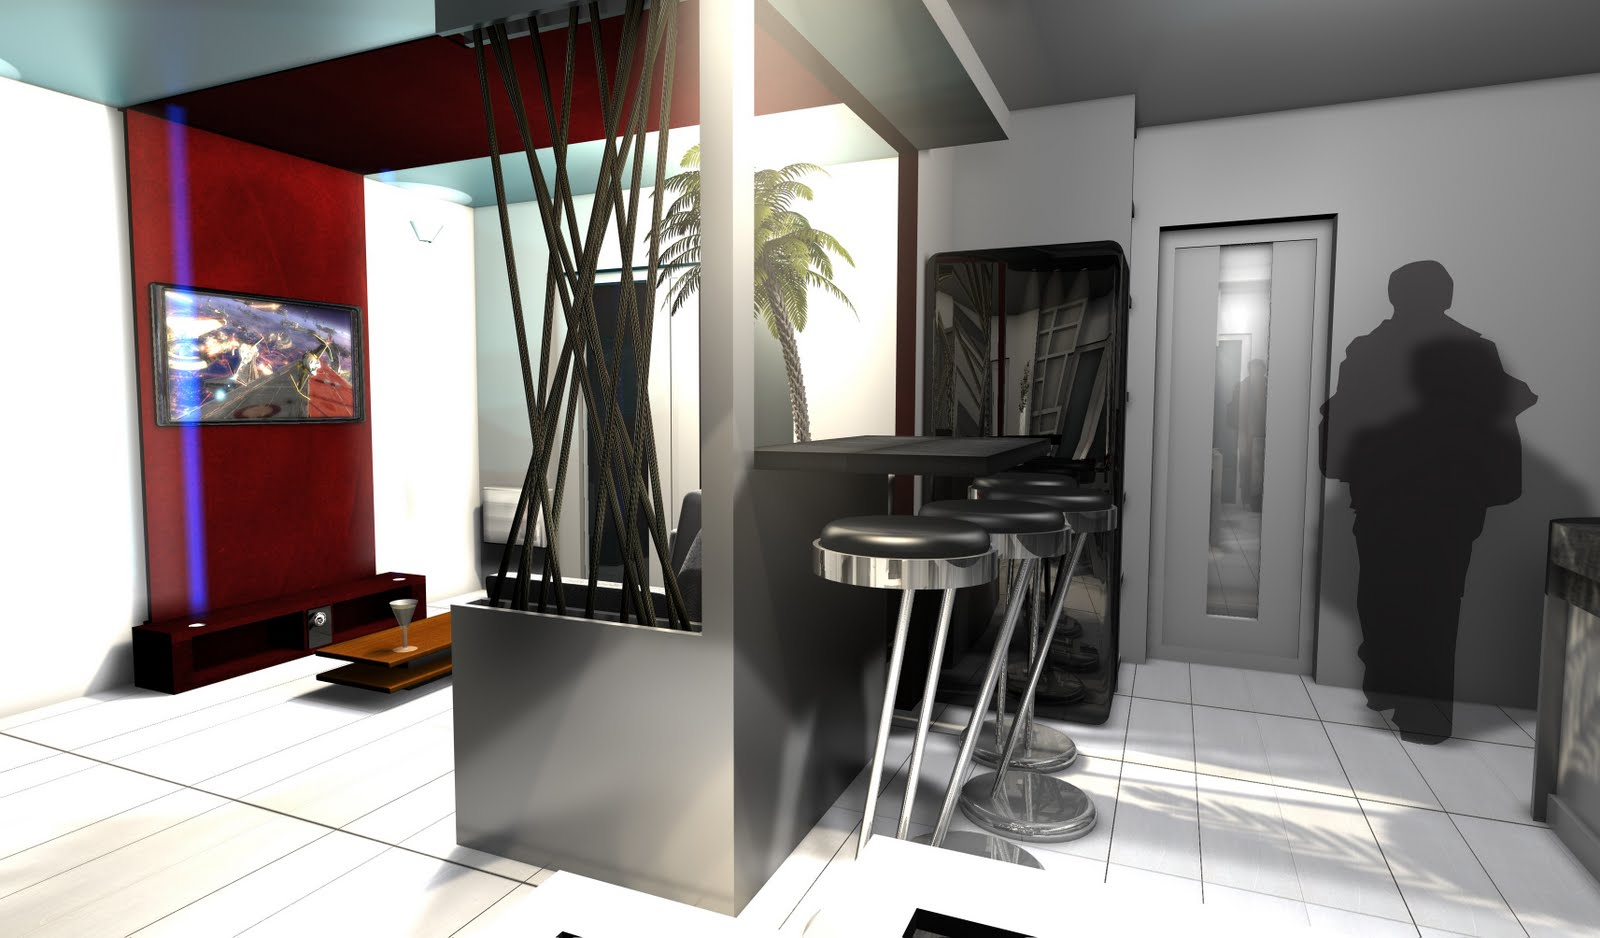 blog archi d co design entr e salon cuisine une pi ce vivre remodeler. Black Bedroom Furniture Sets. Home Design Ideas